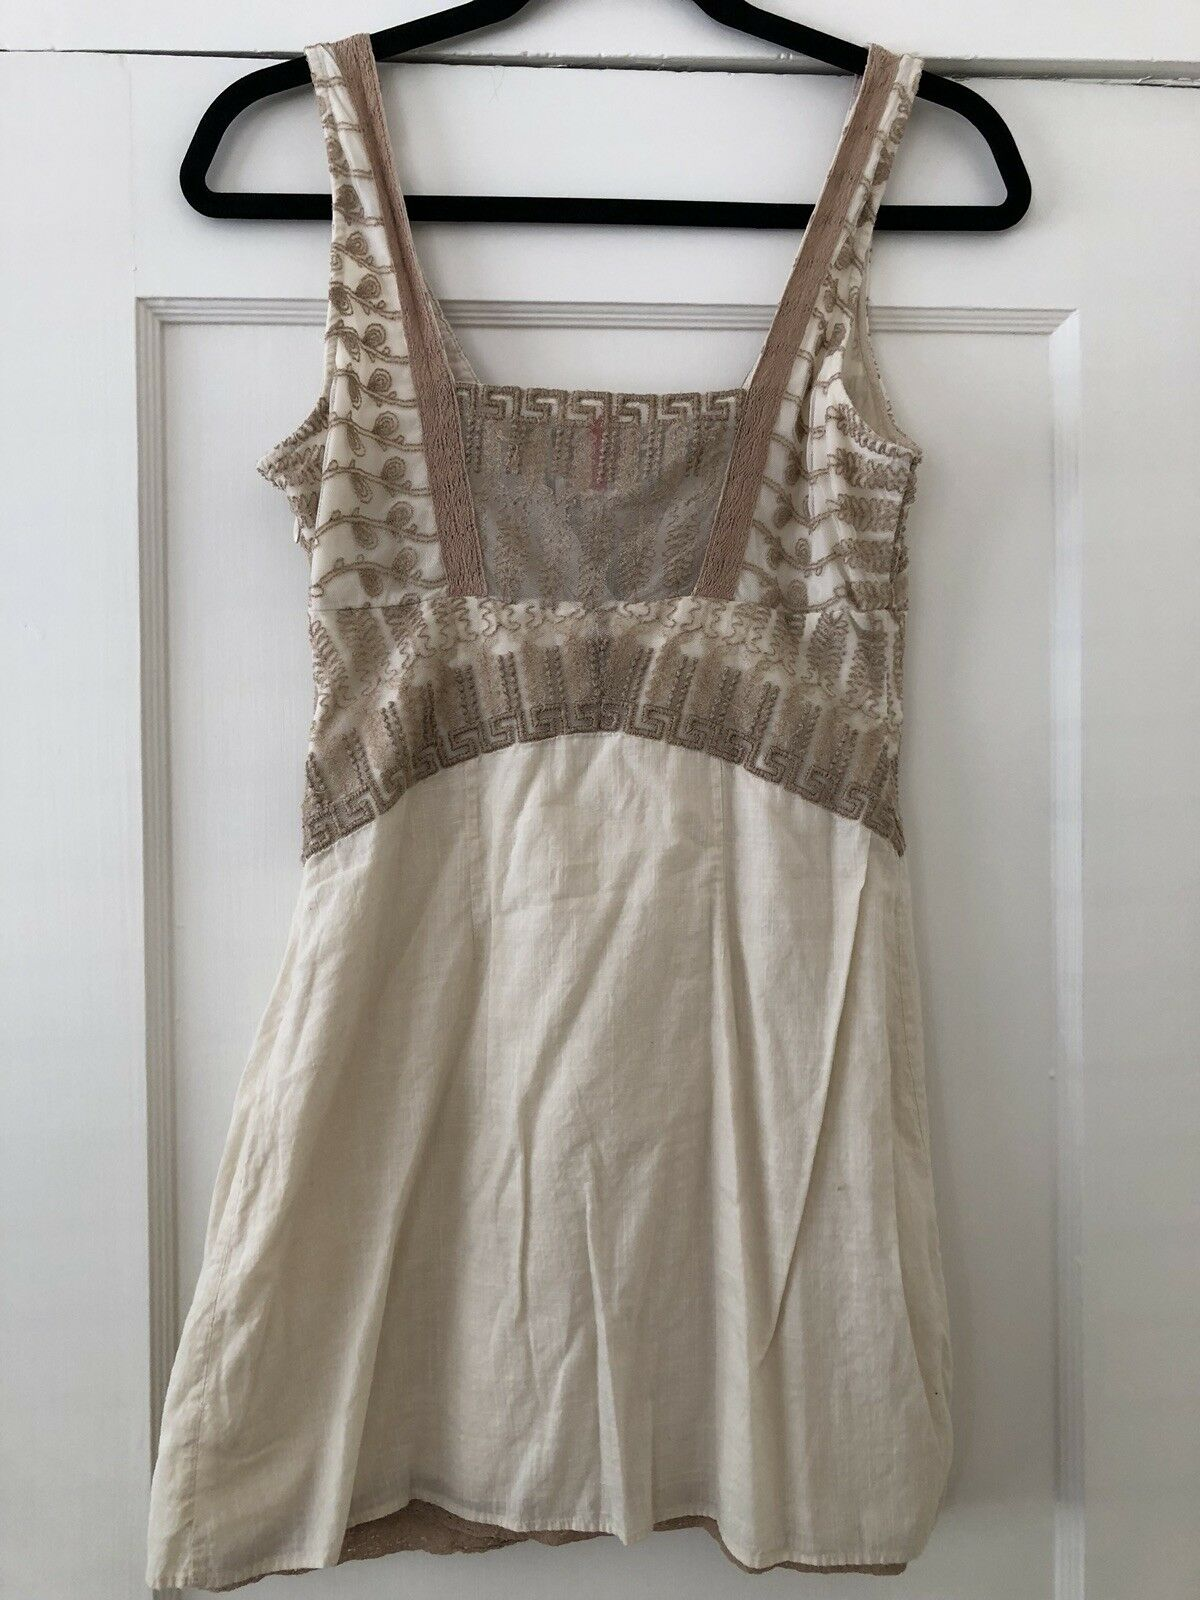 9326a196793 ... FREE PEOPLE Off White and Beige Embroidered Embroidered Embroidered  Sleeveless Dress Tunic - Size 4 140dfa ...